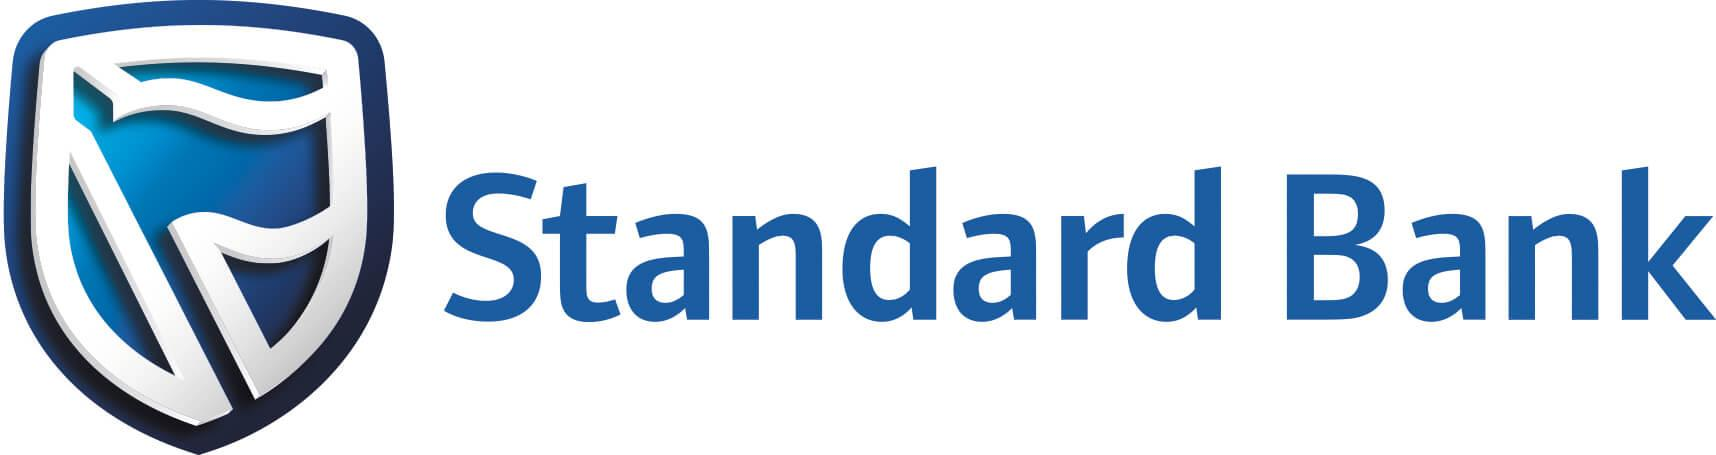 Standard Bank Progress Logo CMYK 1